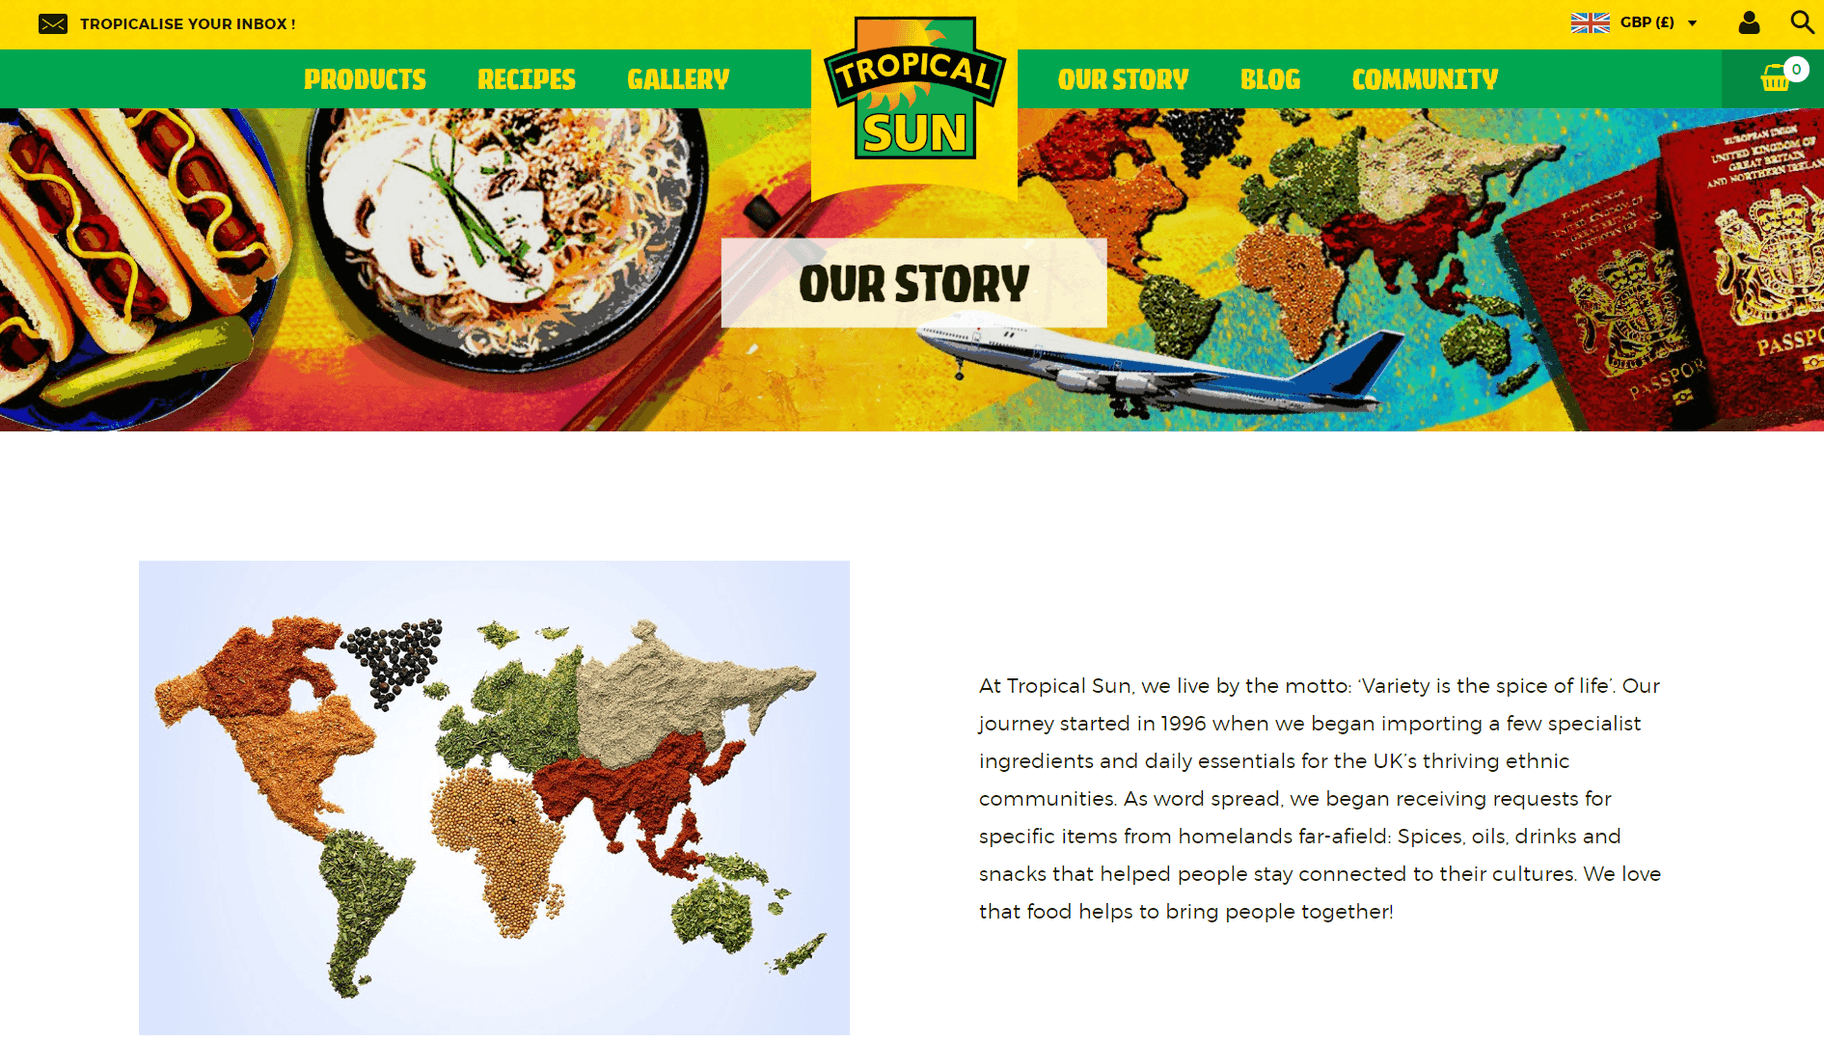 brand storytelling Tropical Sun website